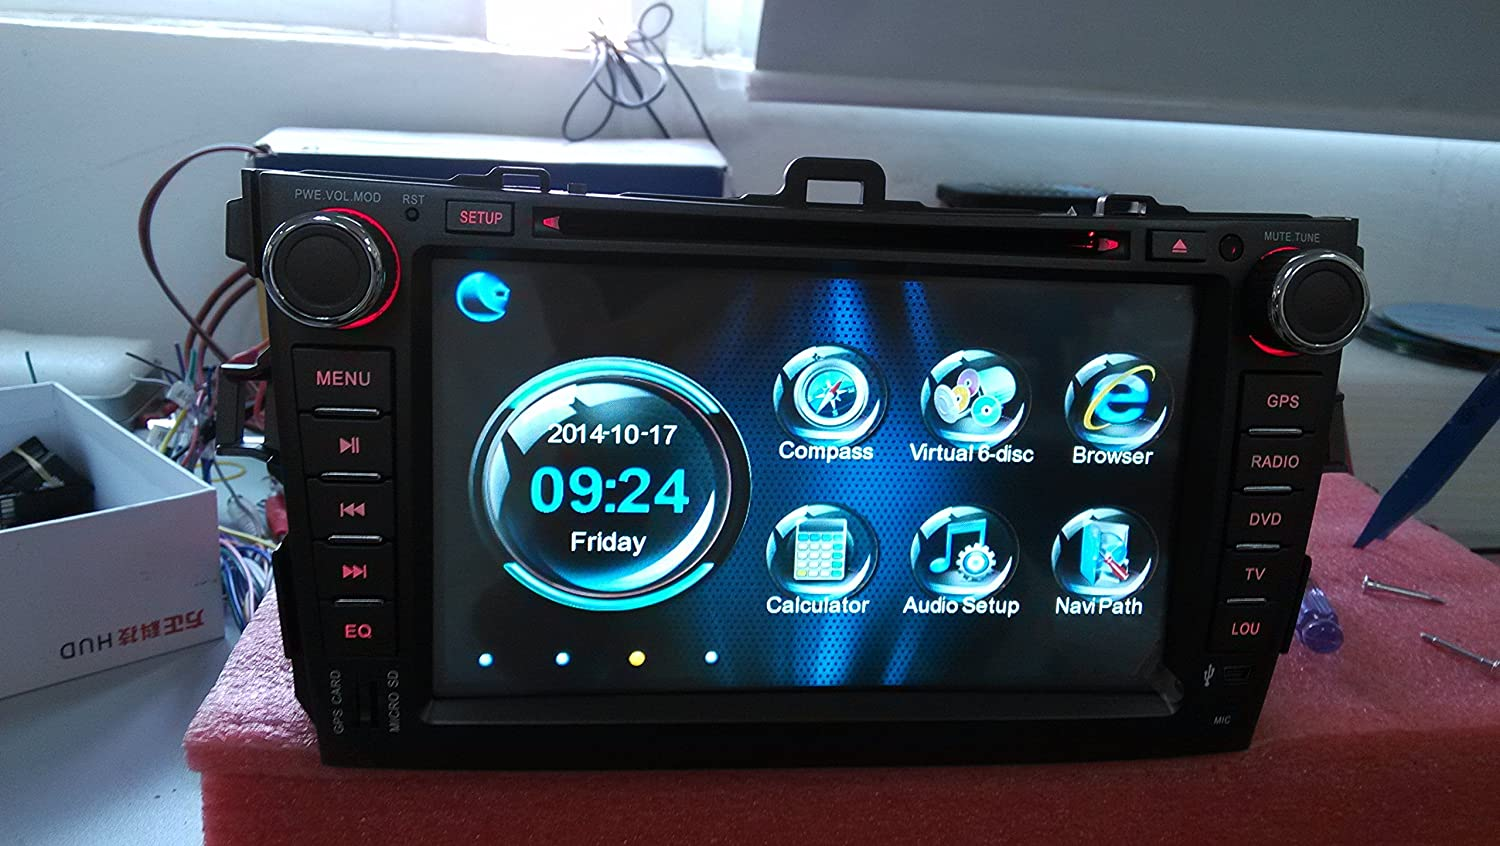 For Toyota Corolla (support year 2007 2008 2009 2010) with 3G WIFI Multi-Touch Screen Car DVD GPS Navigation Build-In Bluetooth,Radio with RDS,Analog TV, AUX&USB, iPhone/iPod Controls, Steering Wheel Control, Free Map автомобильный dvd плеер joyous kd 7 800 480 2 din 4 4 gps navi toyota rav4 4 4 dvd dual core rds wifi 3g